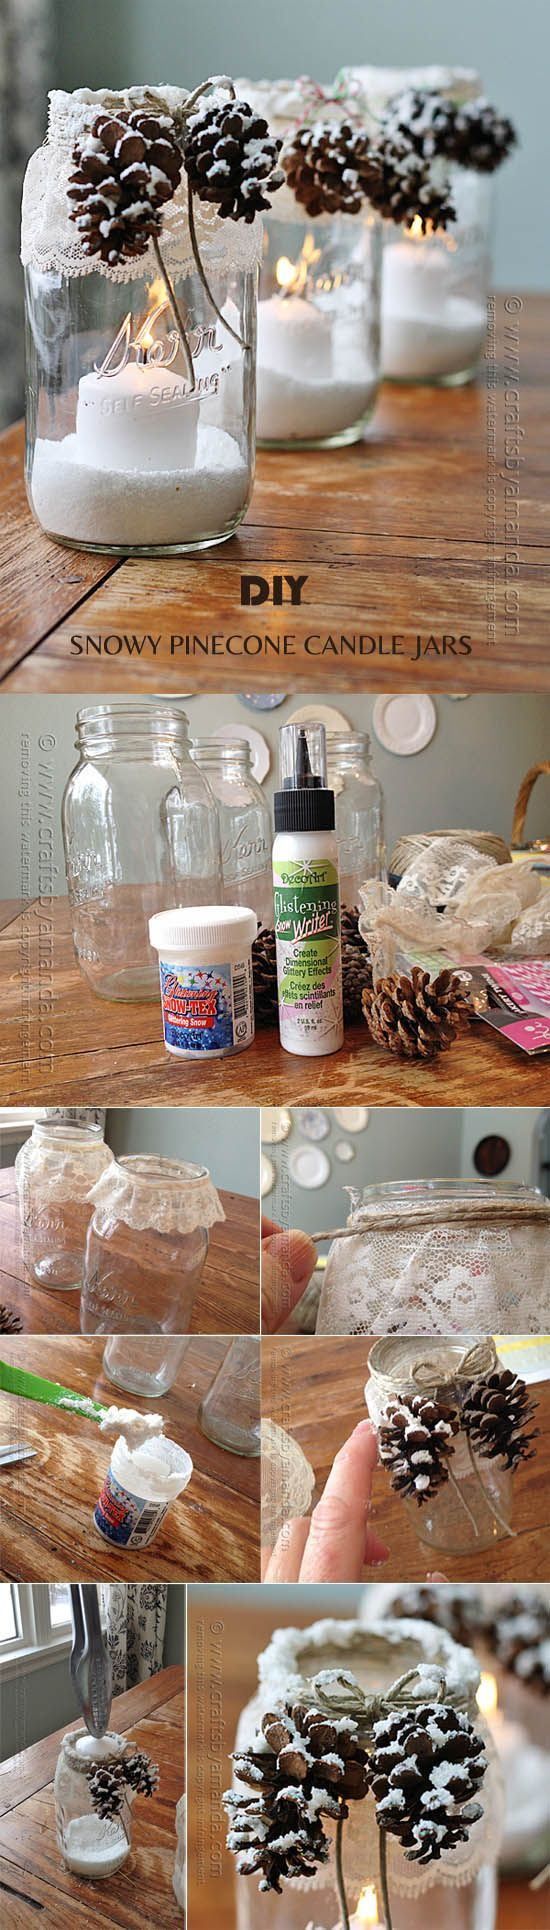 diy wedding centerpieces on a budget candle jars pinecone and